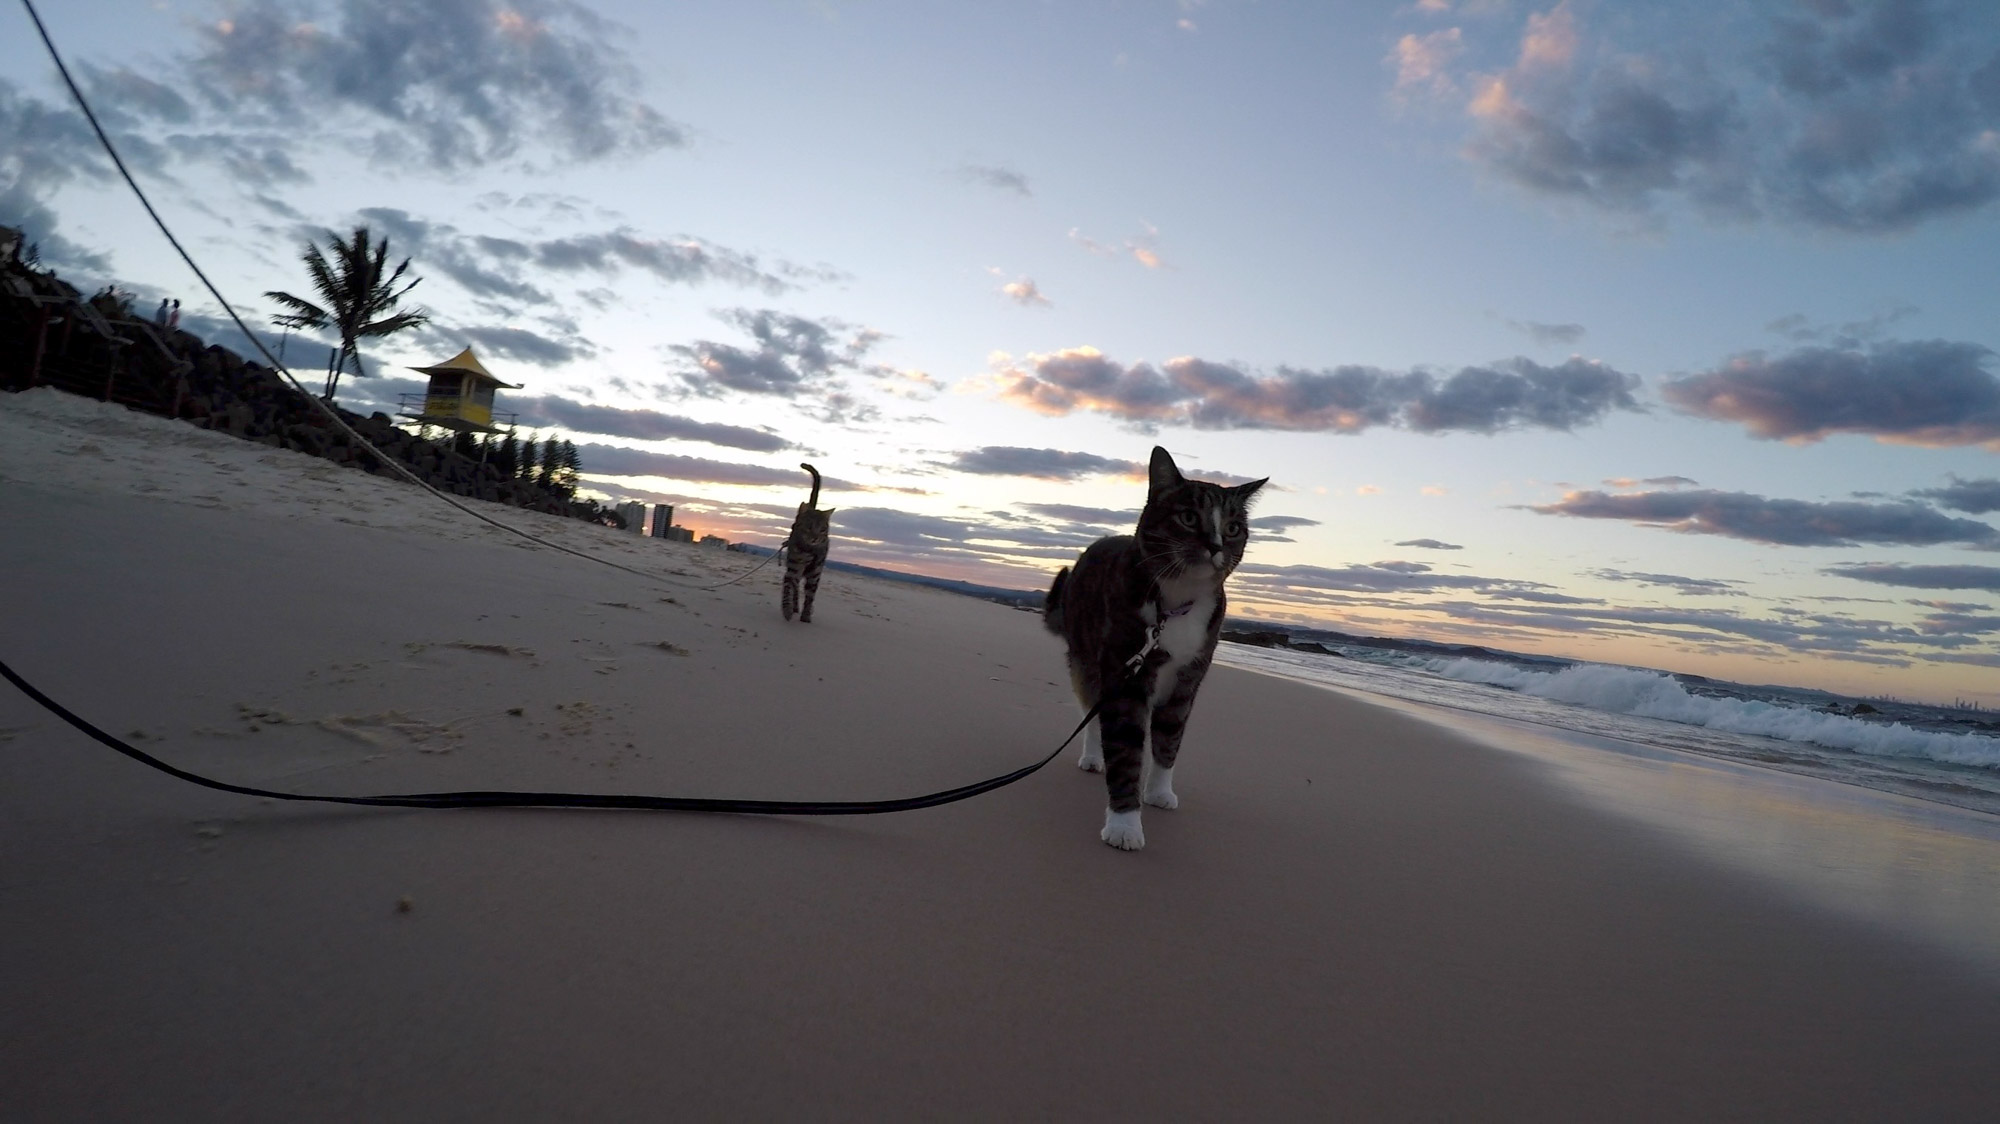 cats walking on leashes at beach